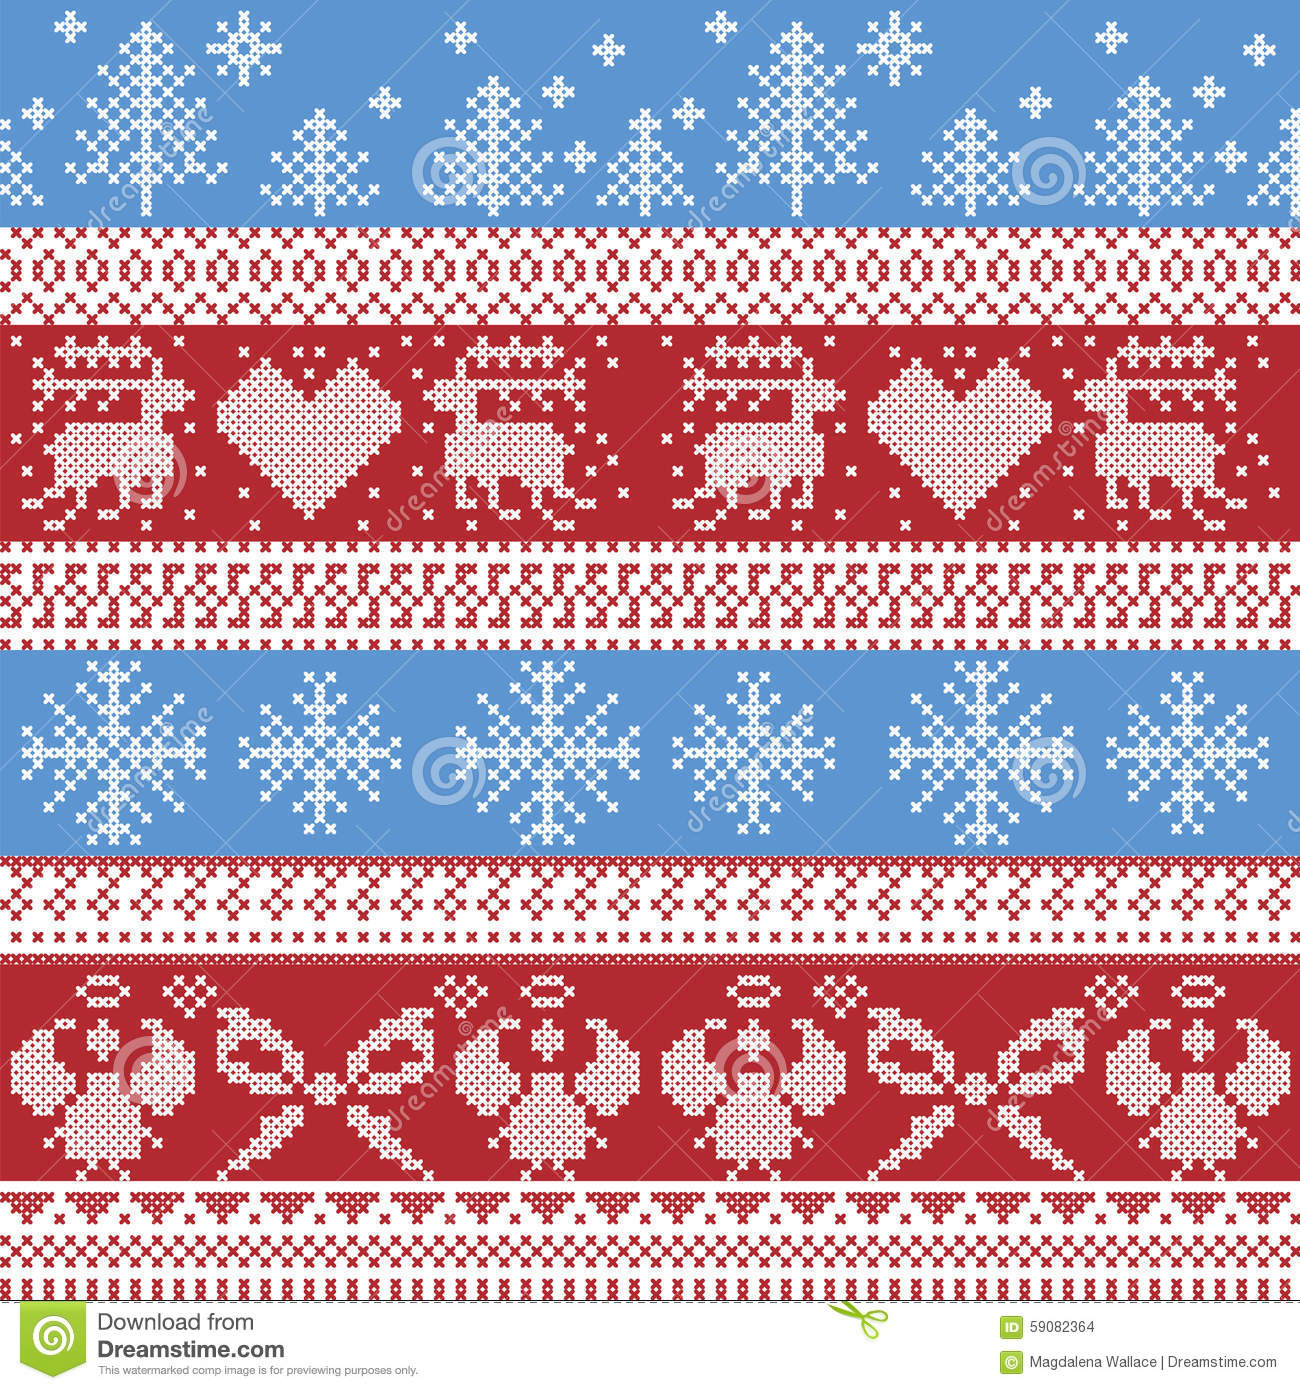 blue and red nordic christmas winter pattern with reindeer